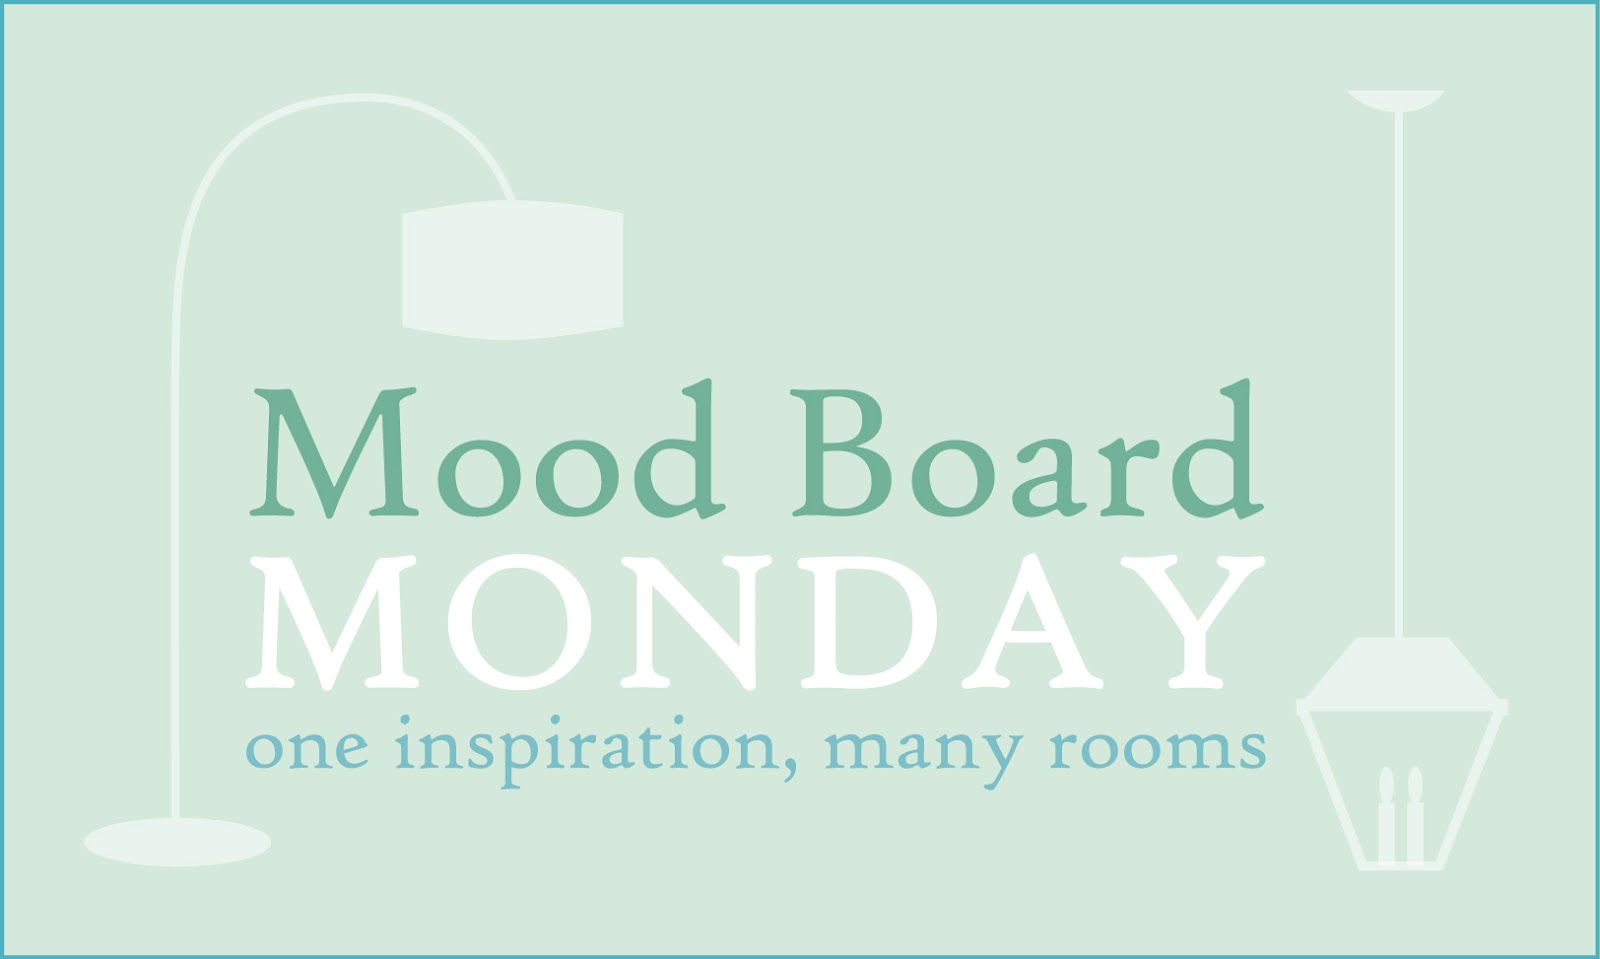 And Welcome To The 13th Mood Board Monday Linky Party So Happy Youre Here